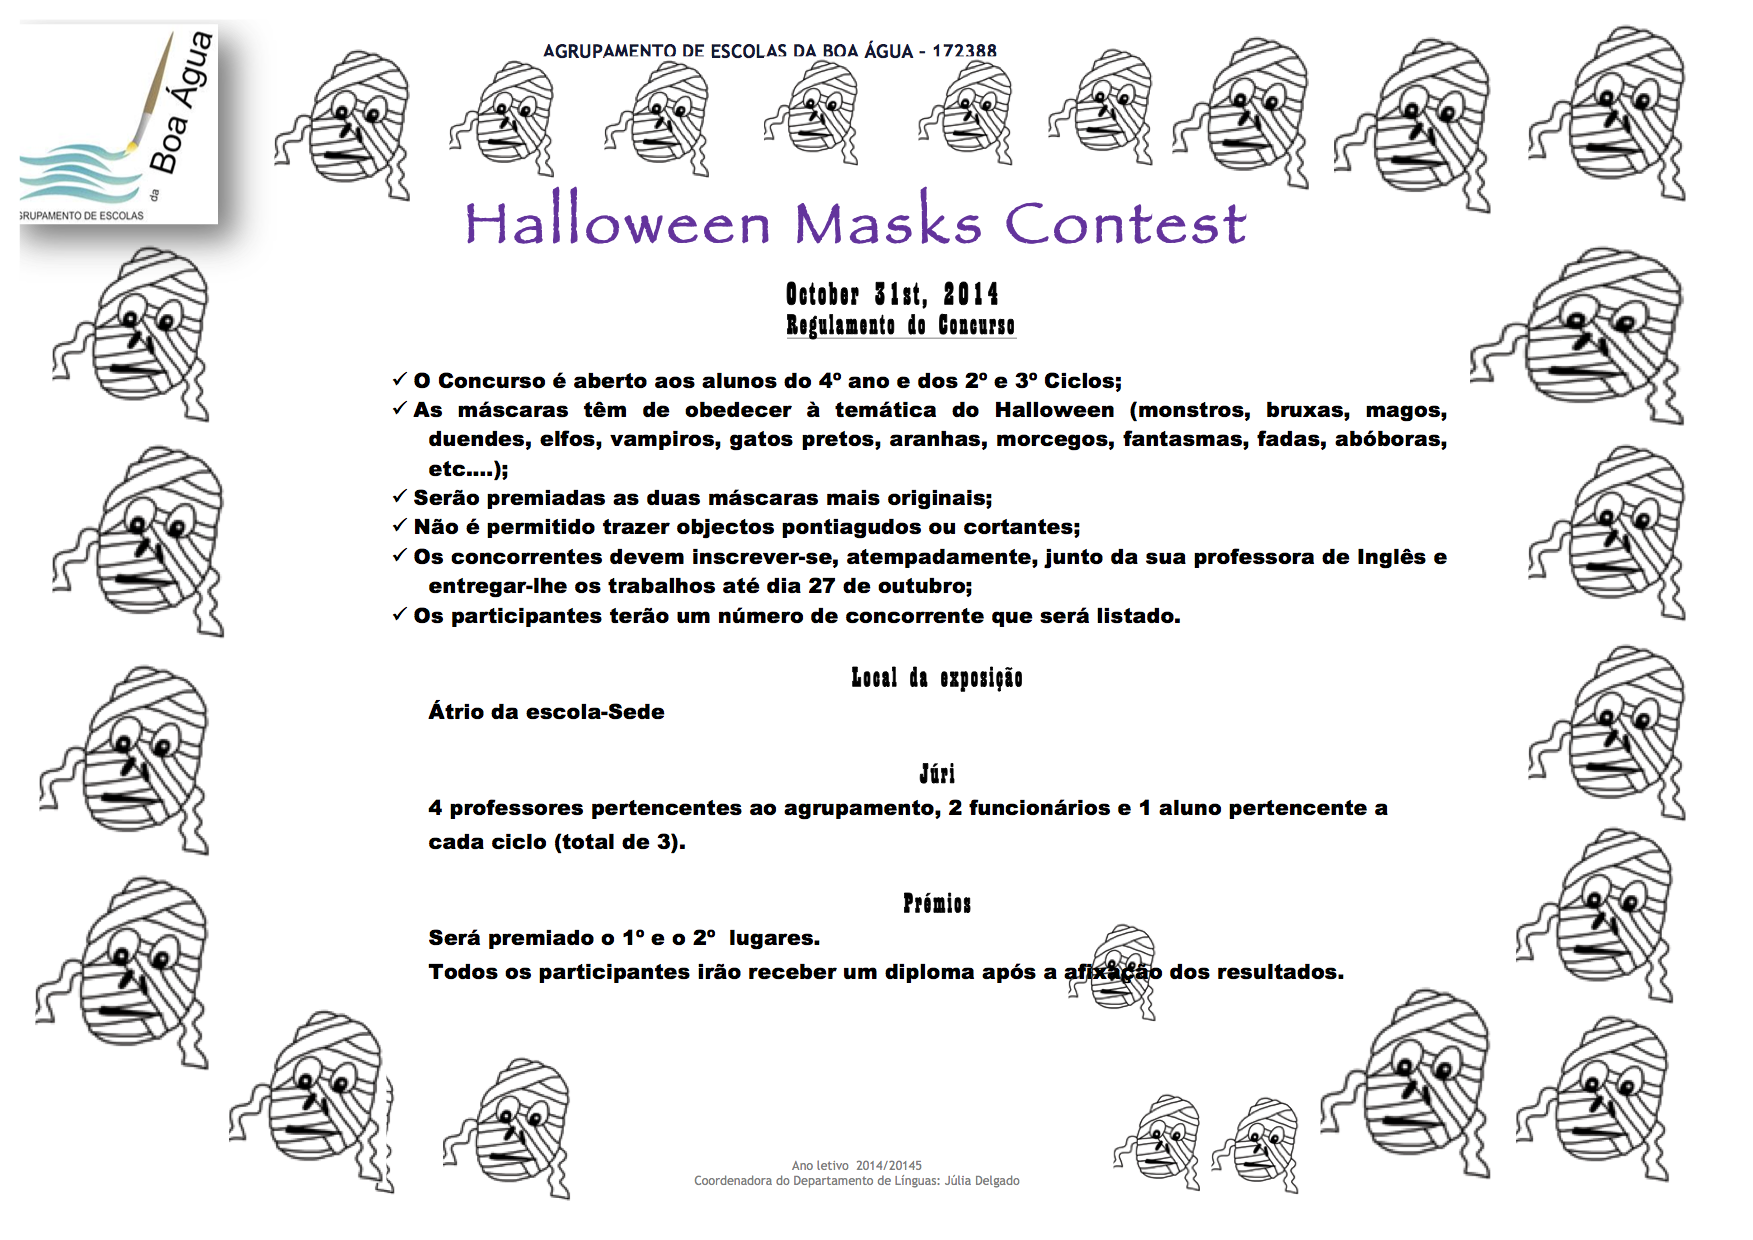 regulamento concurso halloween máscaras 2014 -2015